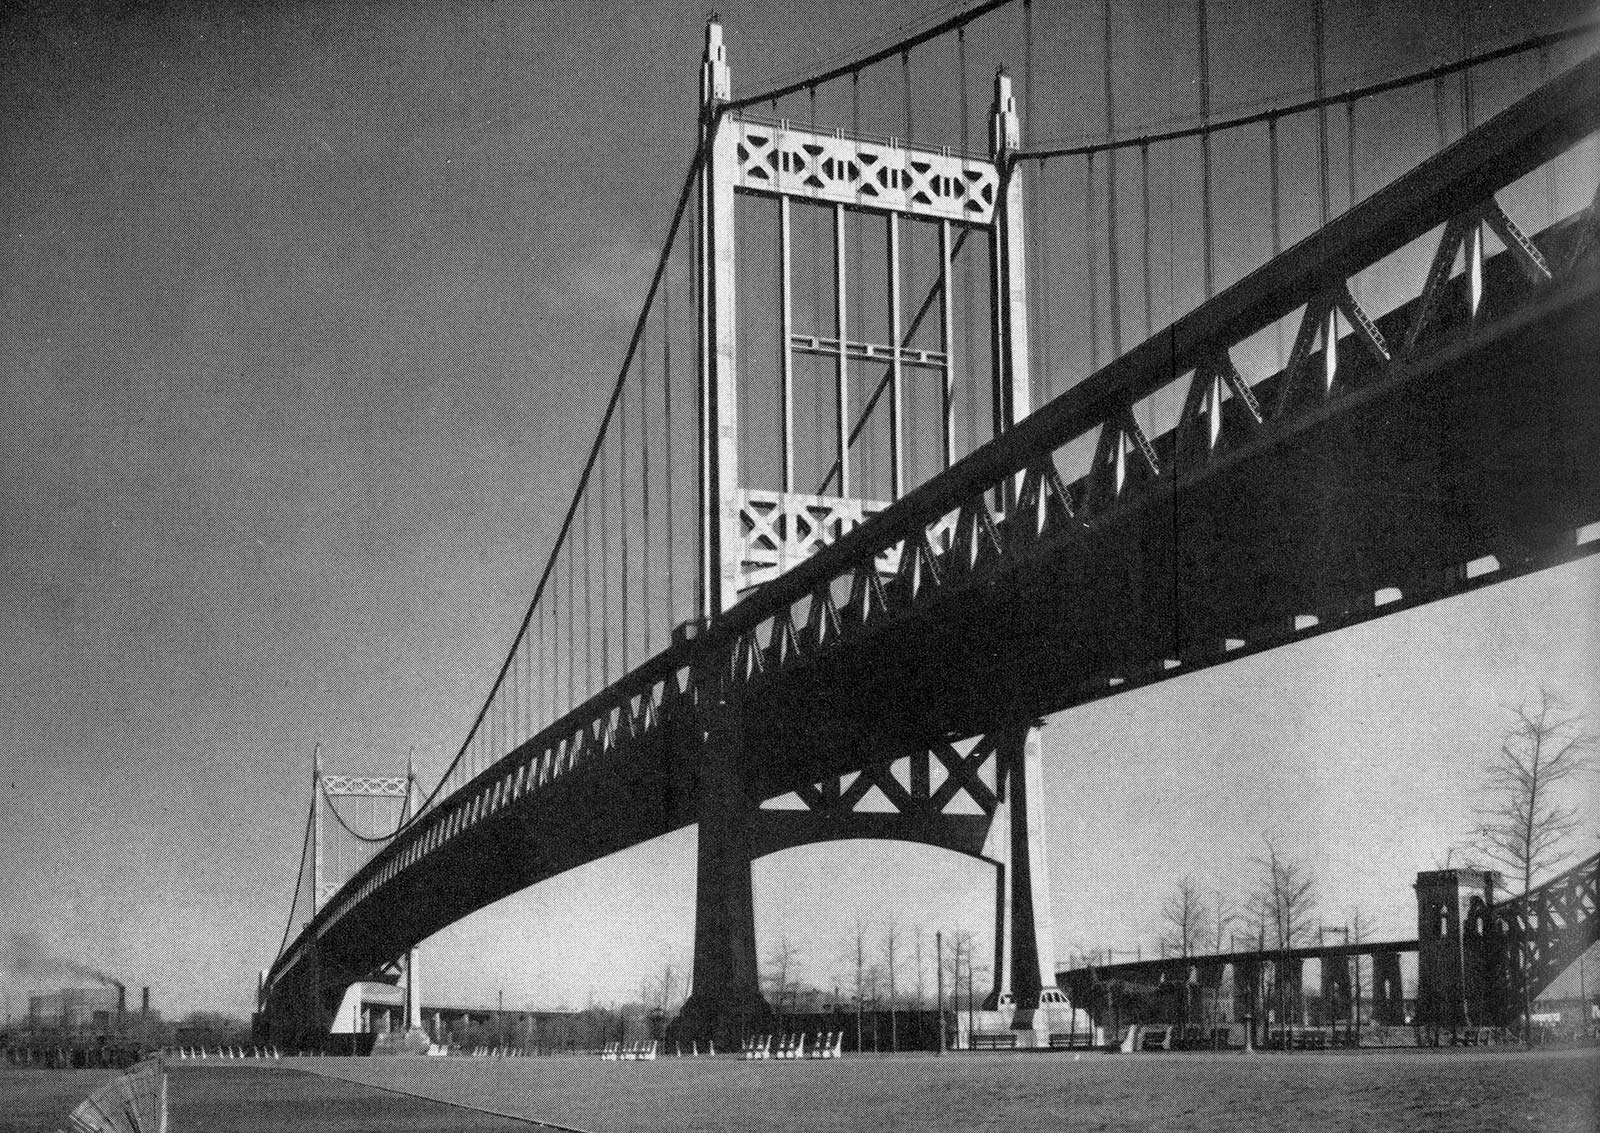 The Triborough Bridge